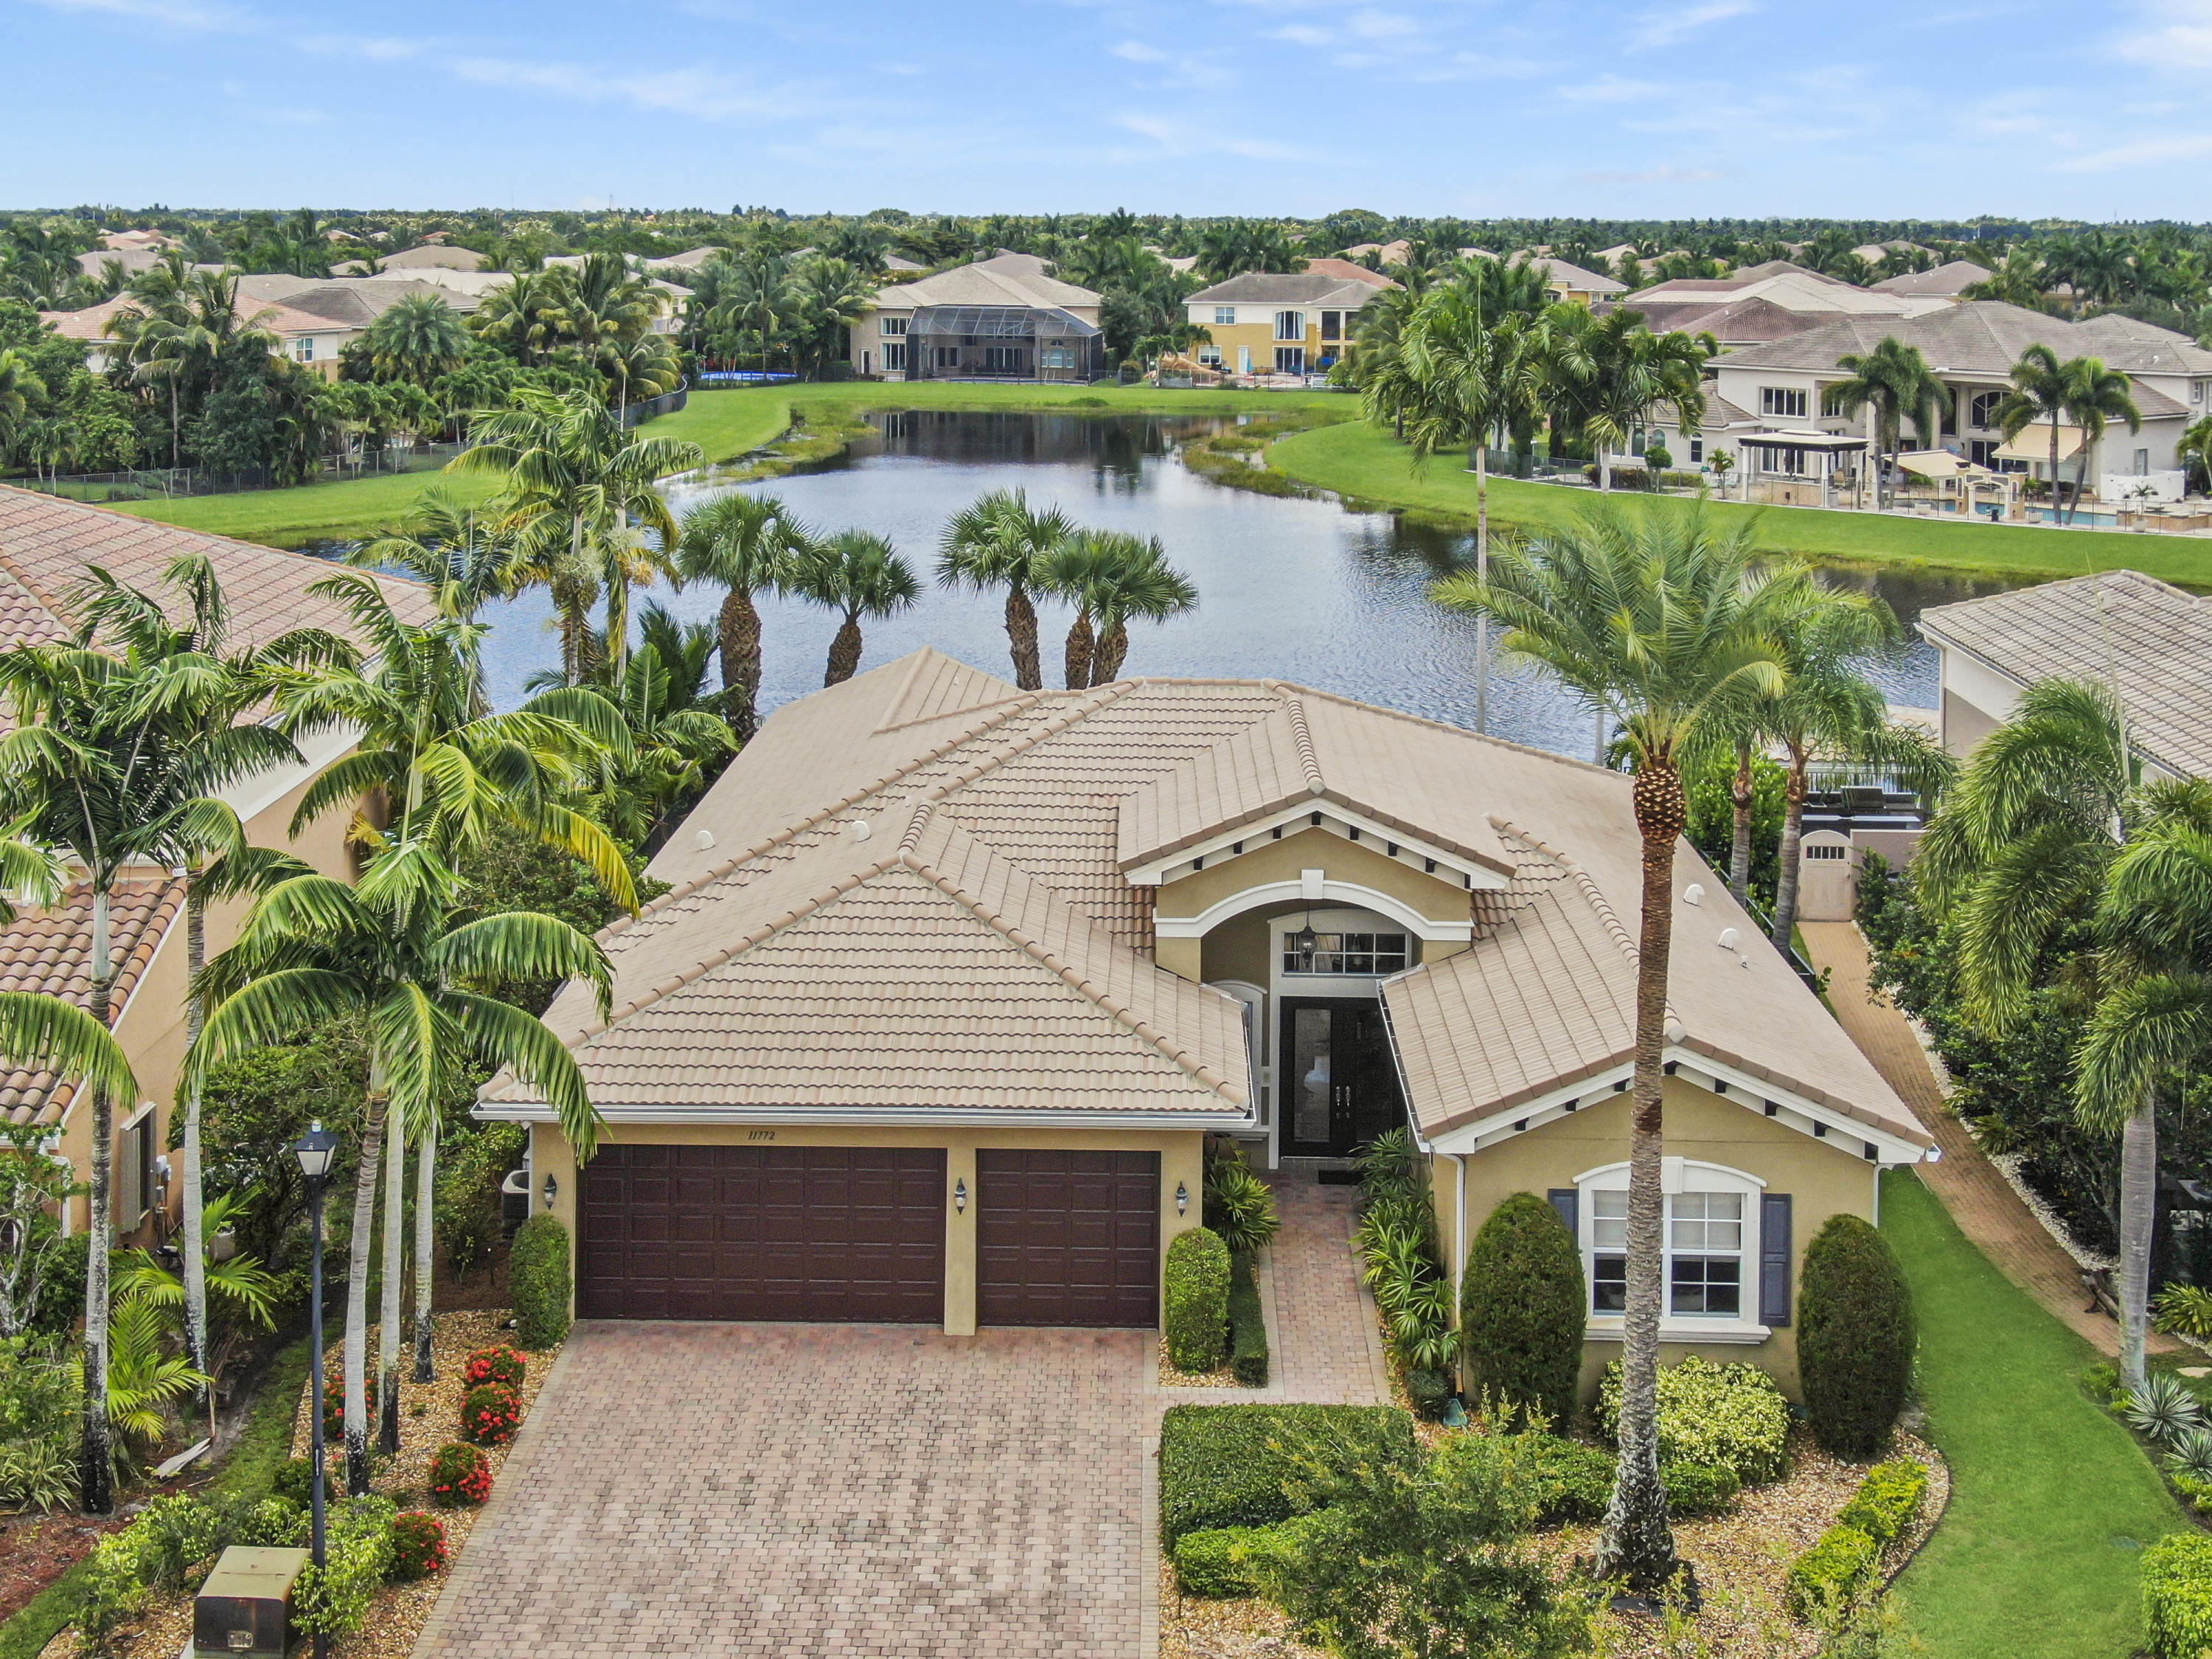 11772 Foxbriar Lake Trail  Boynton Beach, FL 33473